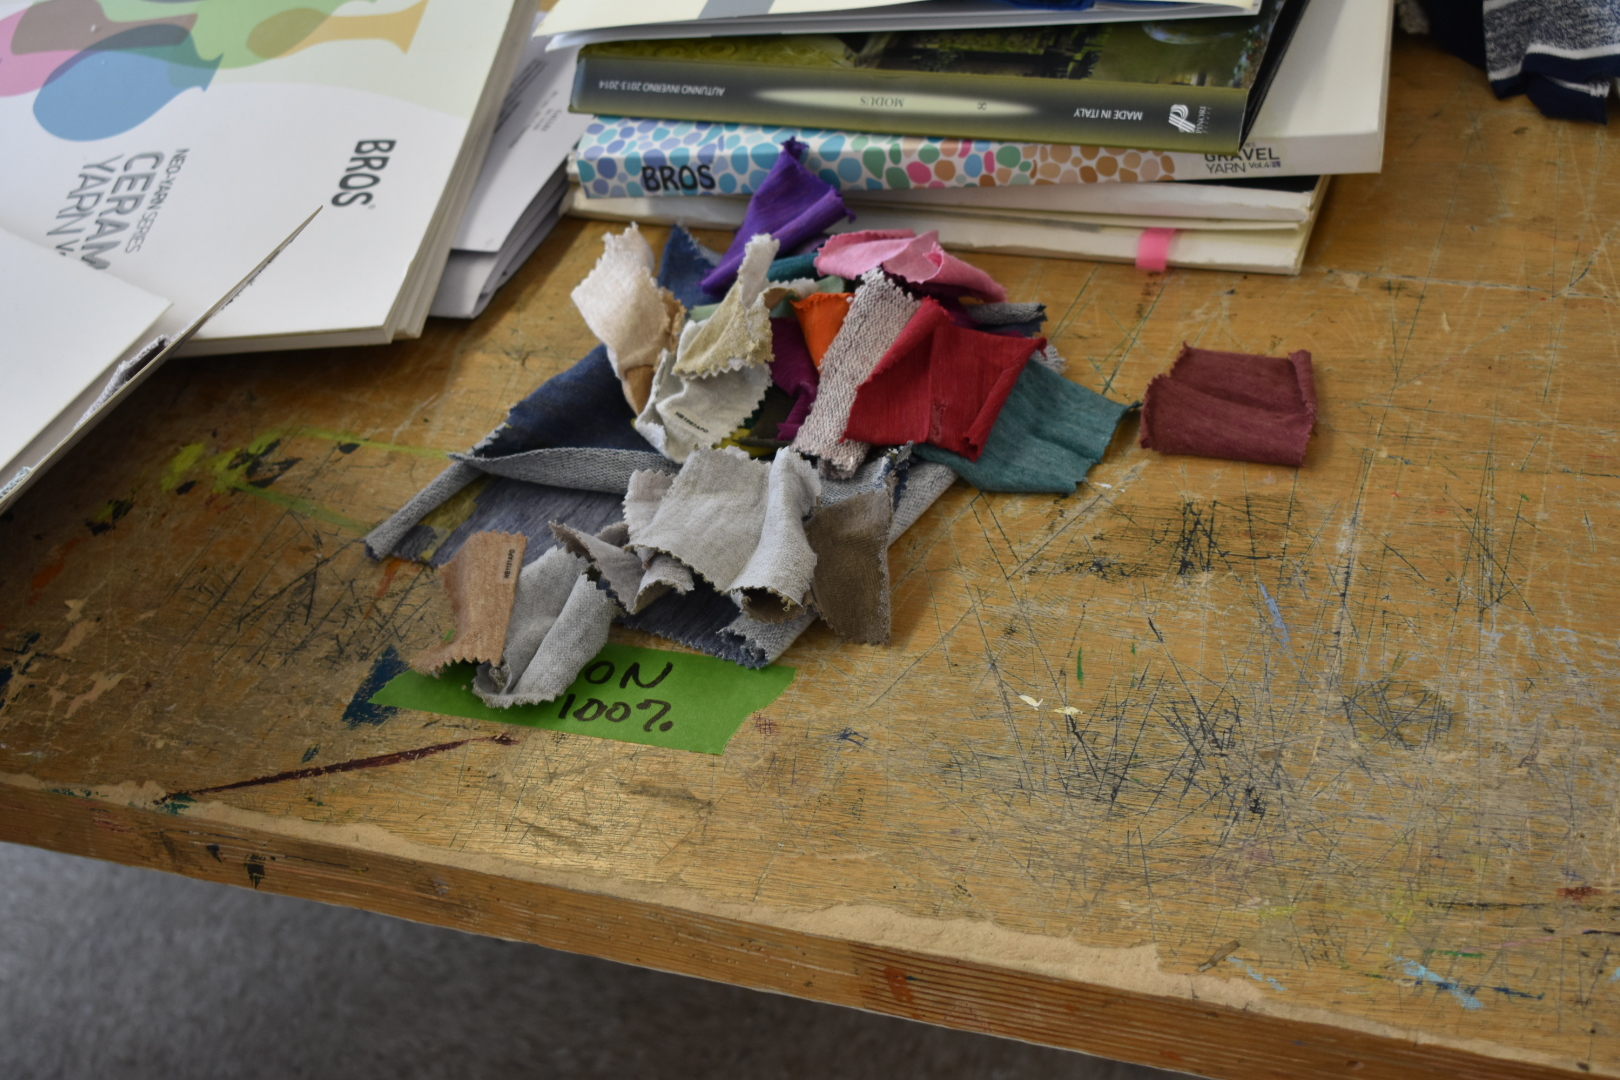 Fabric scraps sorted into a 100% cotton pile. (Photo by Sierra Petro)